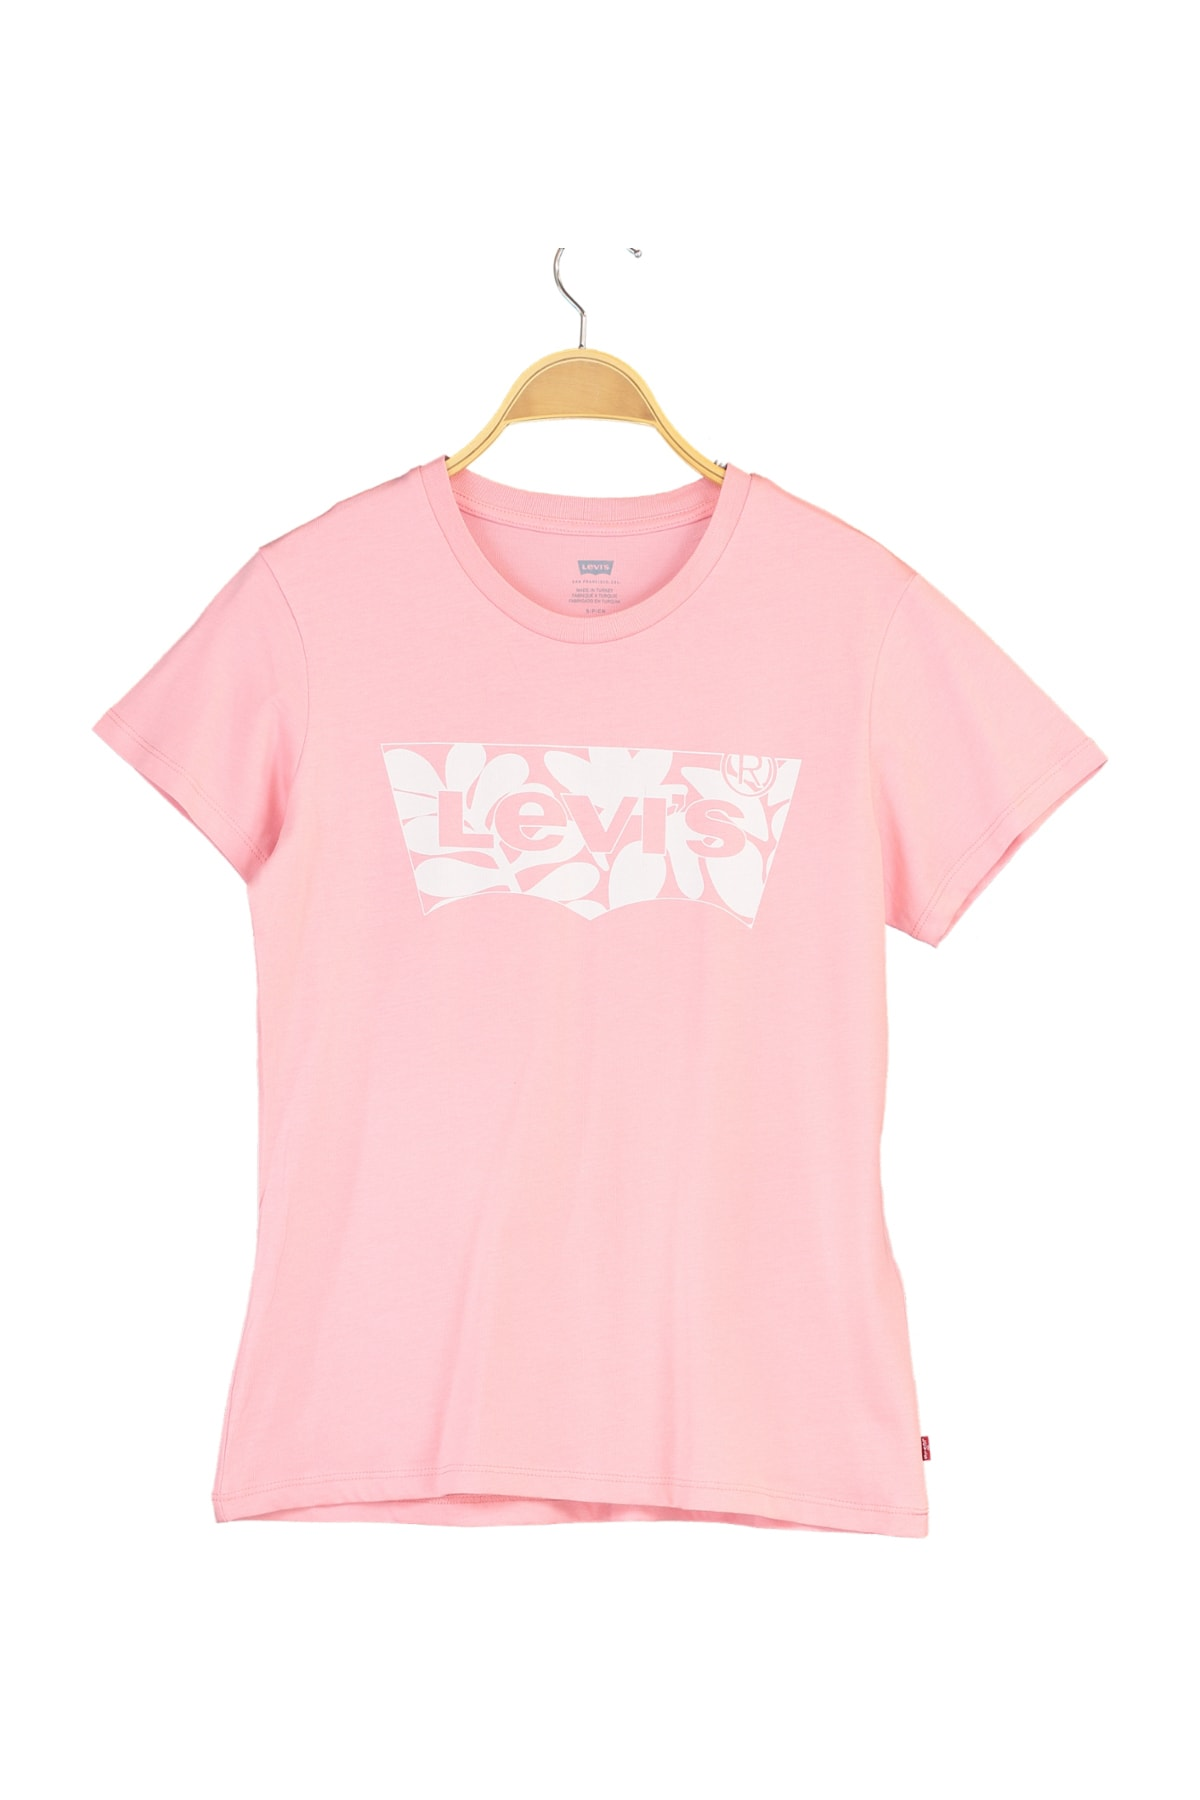 Levi's Kadın The Perfect Tee Lse_Batwıng Fıll Artıst T-Shirt 17369-1515 1